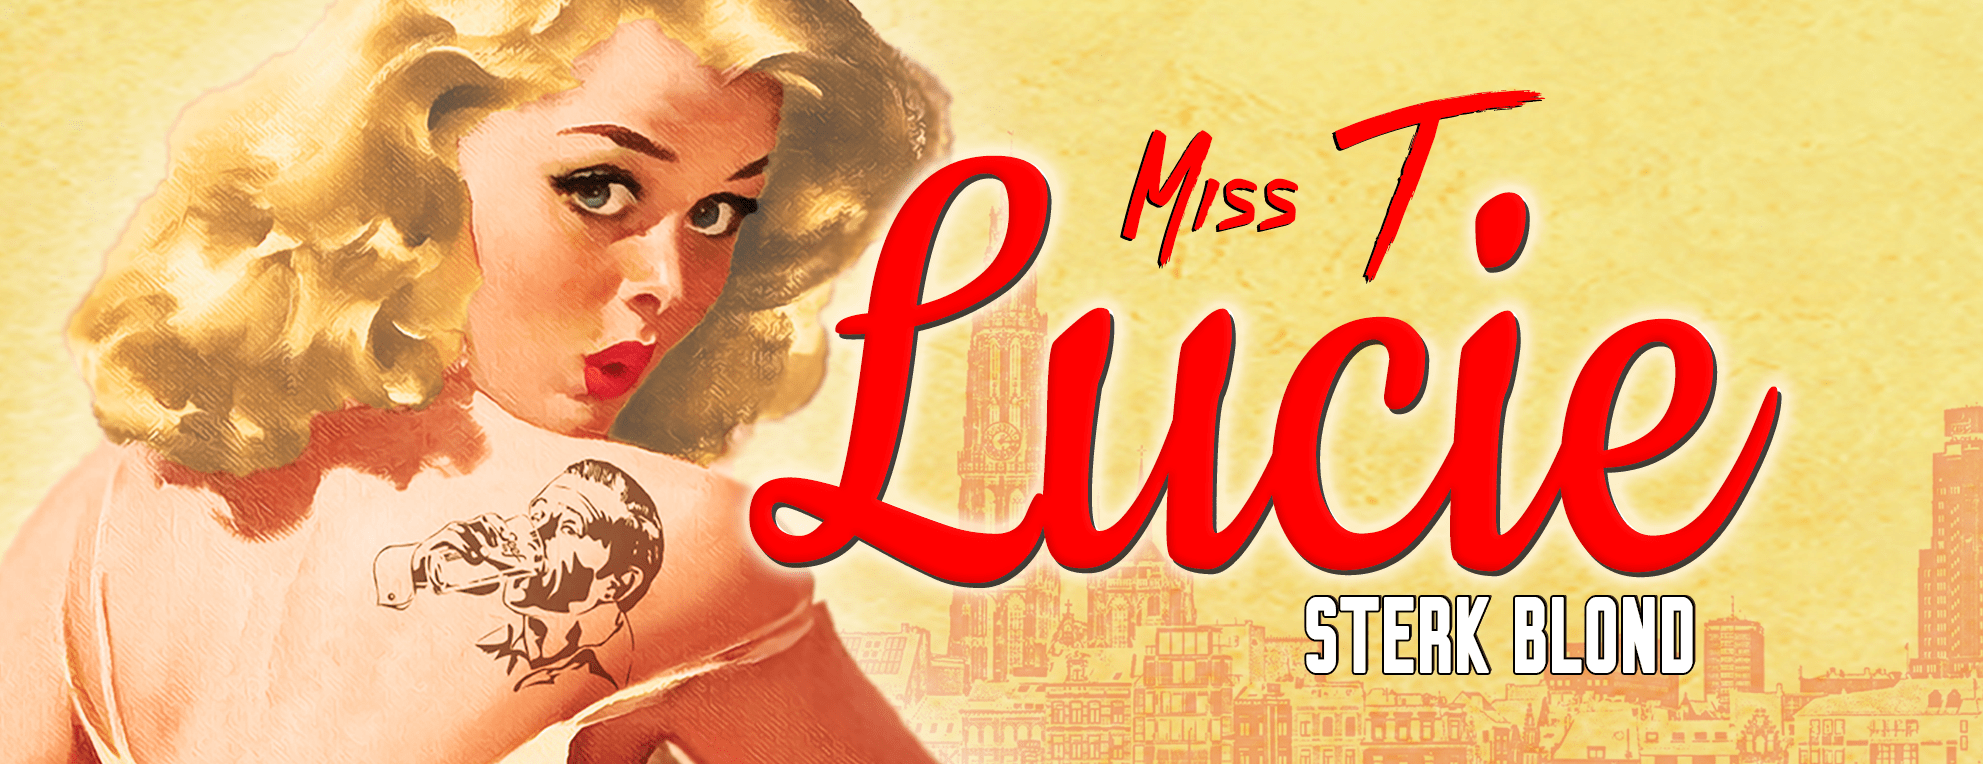 Miss T Lucie Banner